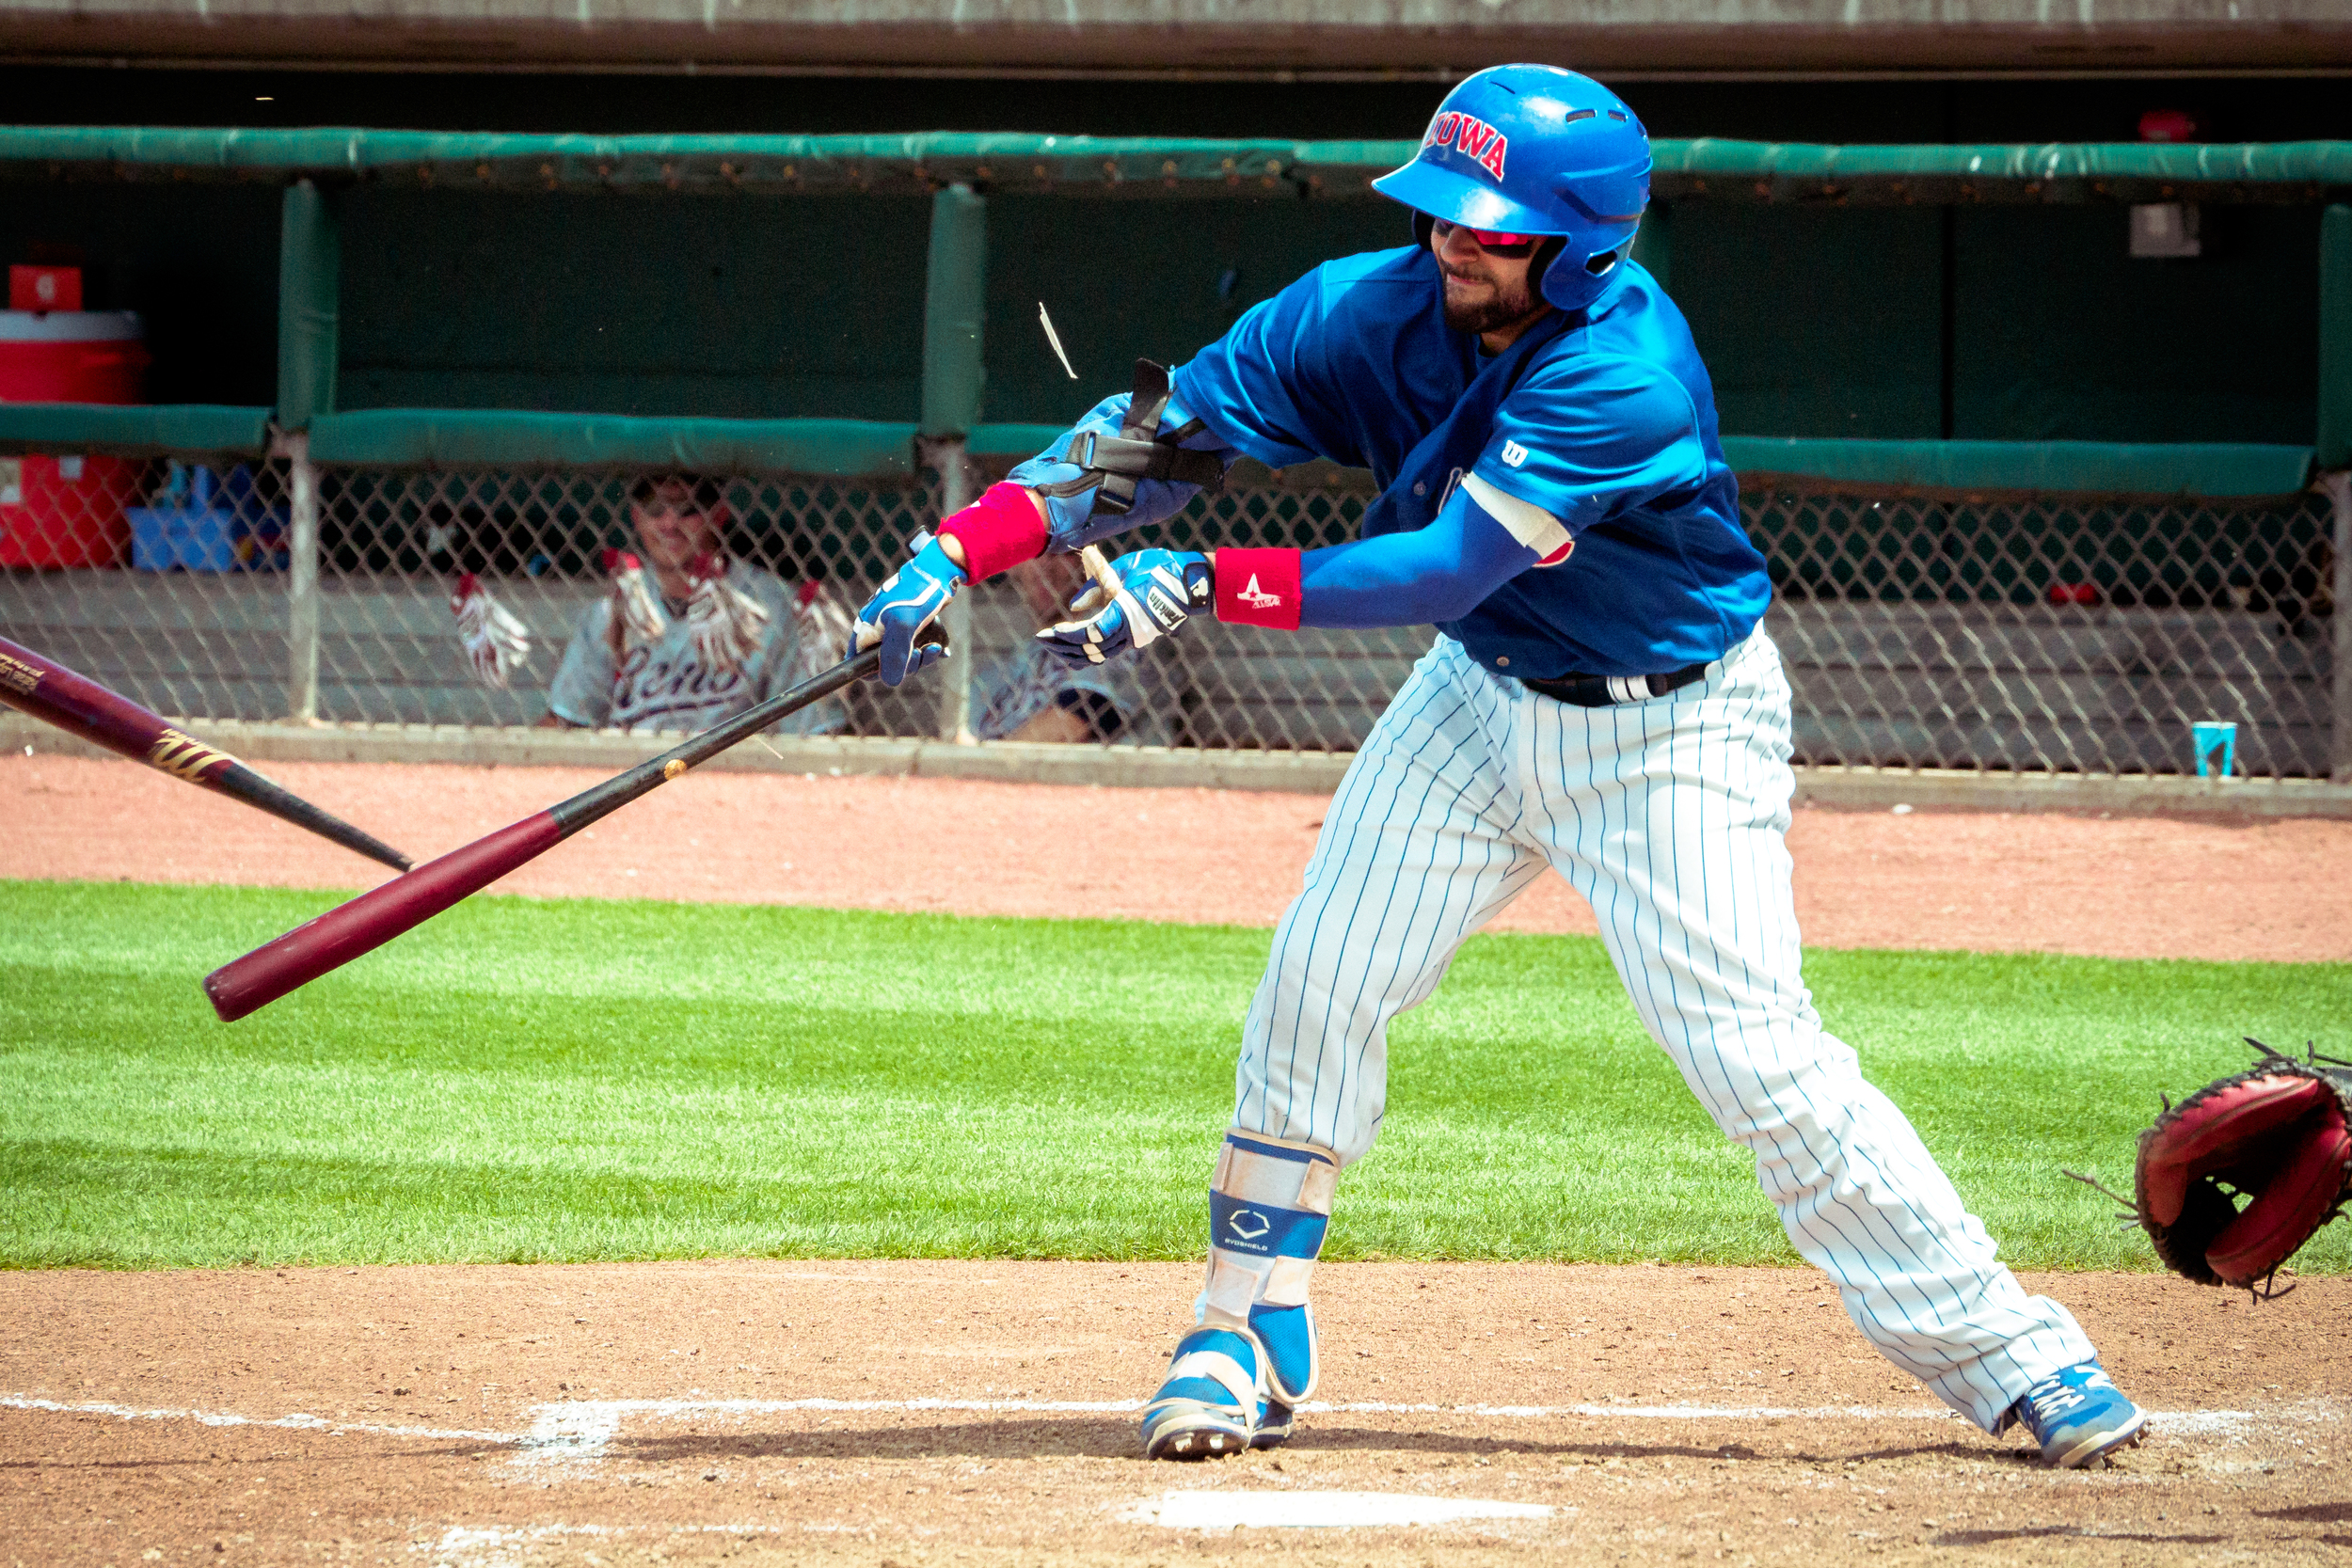 This Iowa Cubs player wasn't having the best day after smashing his bat in several pieces.